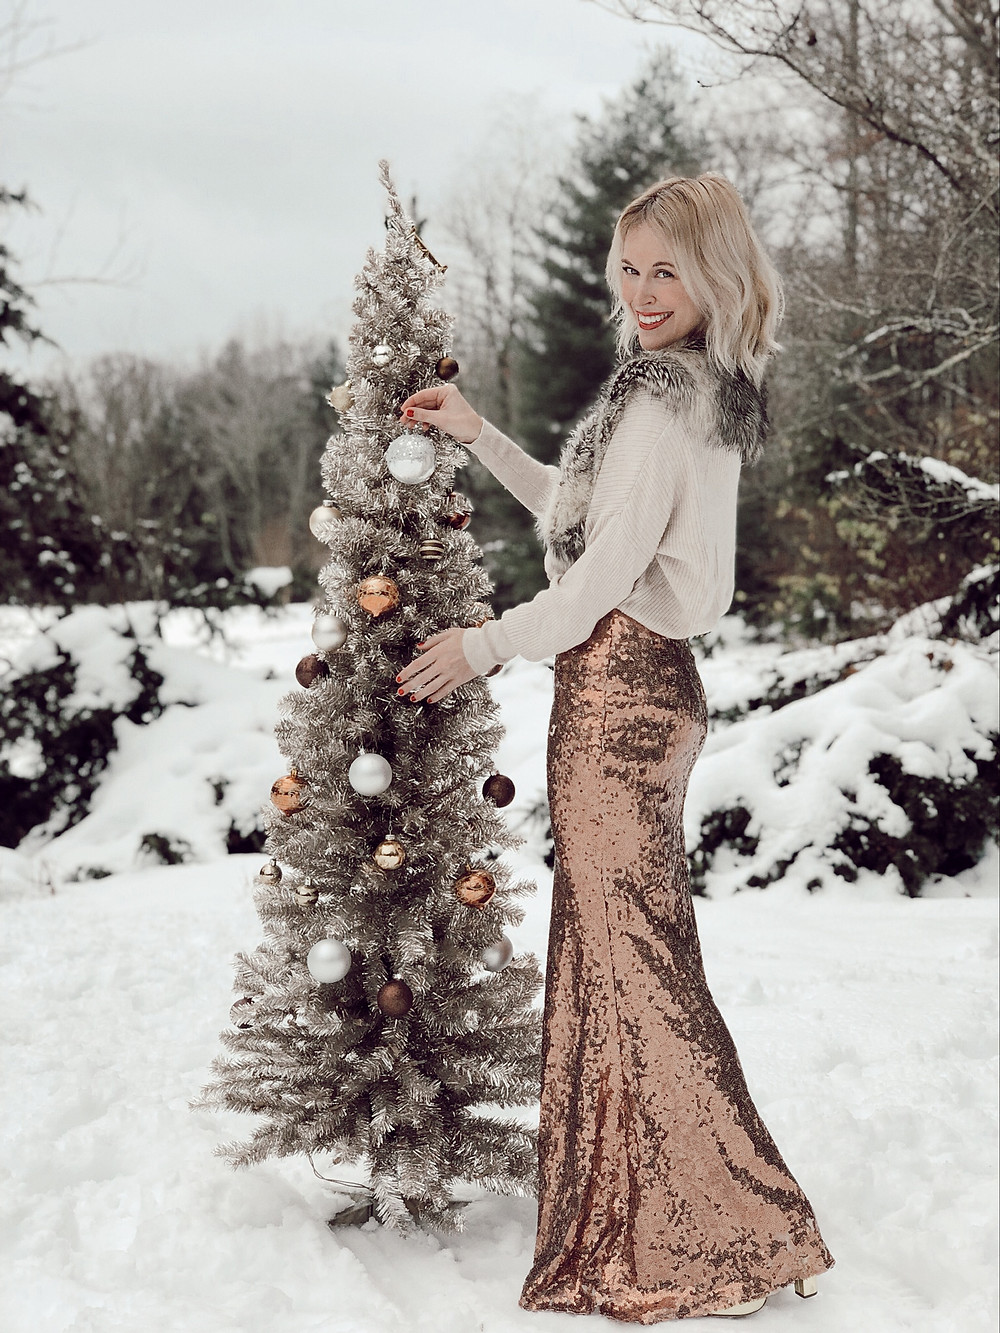 Woman wearing sequin skirt and fur collared sweater stands in snow in front of metallic Christmas tree.